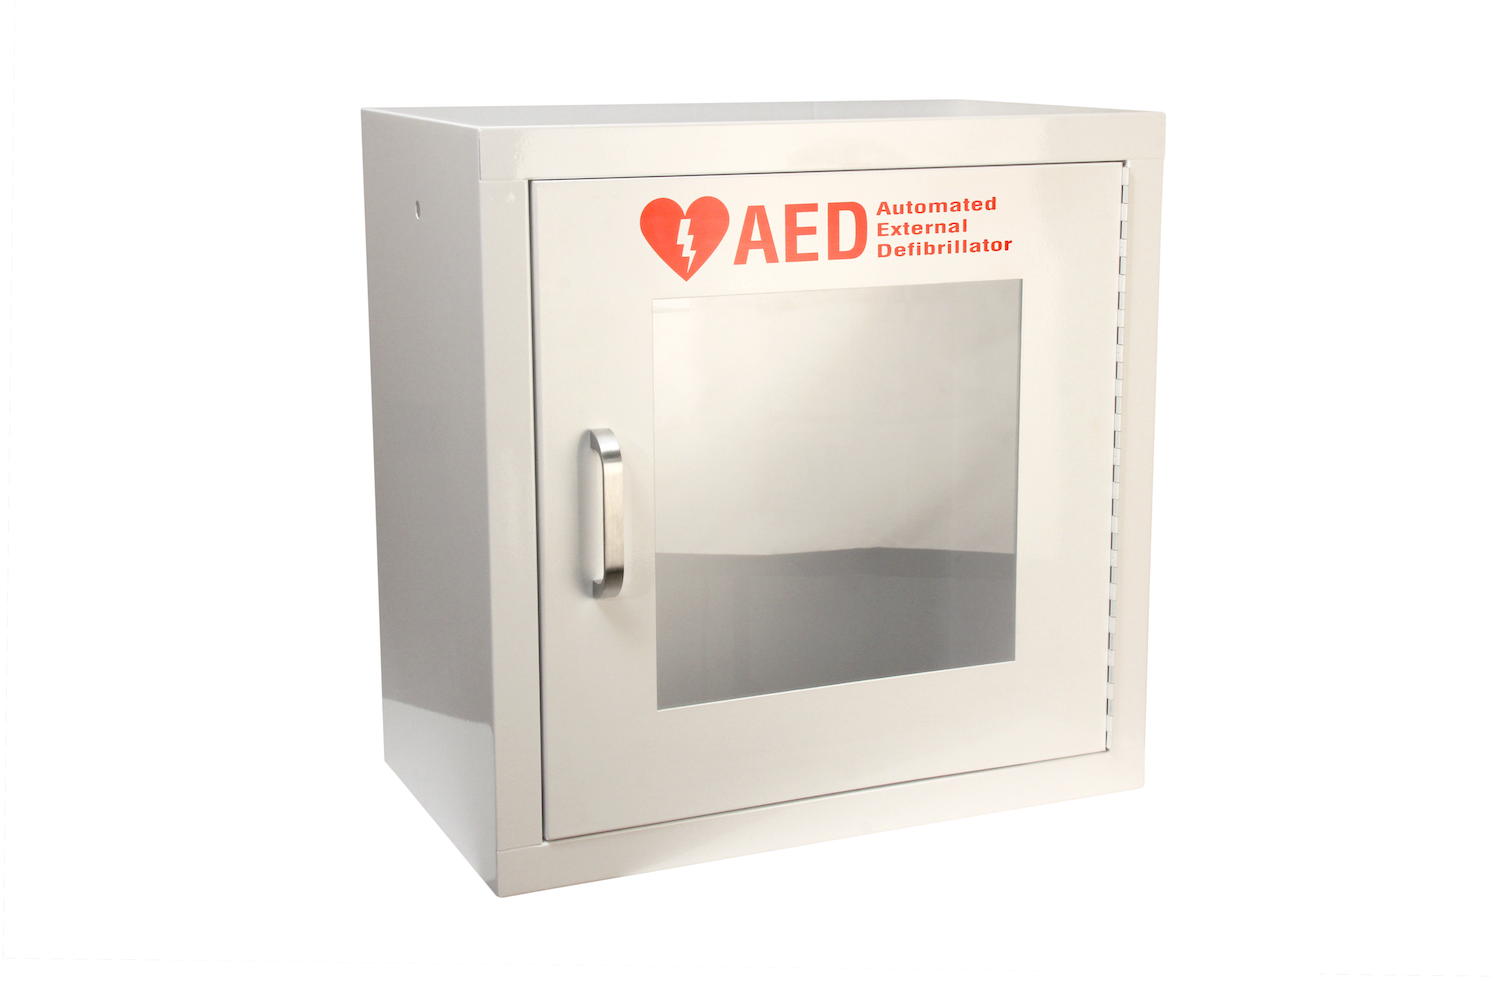 """#140 AED Alarm Cabinet   Outside dimensions 20 x 20 x 12"""" 20 ga steel / individual weight 24 lbs Acrylic window 11 x 11 x 1/8"""" Individual carton Max QTY per 40 x 48"""" pallet—15 Gloss white powder coating  Window / pull handle / alarm+battery included"""